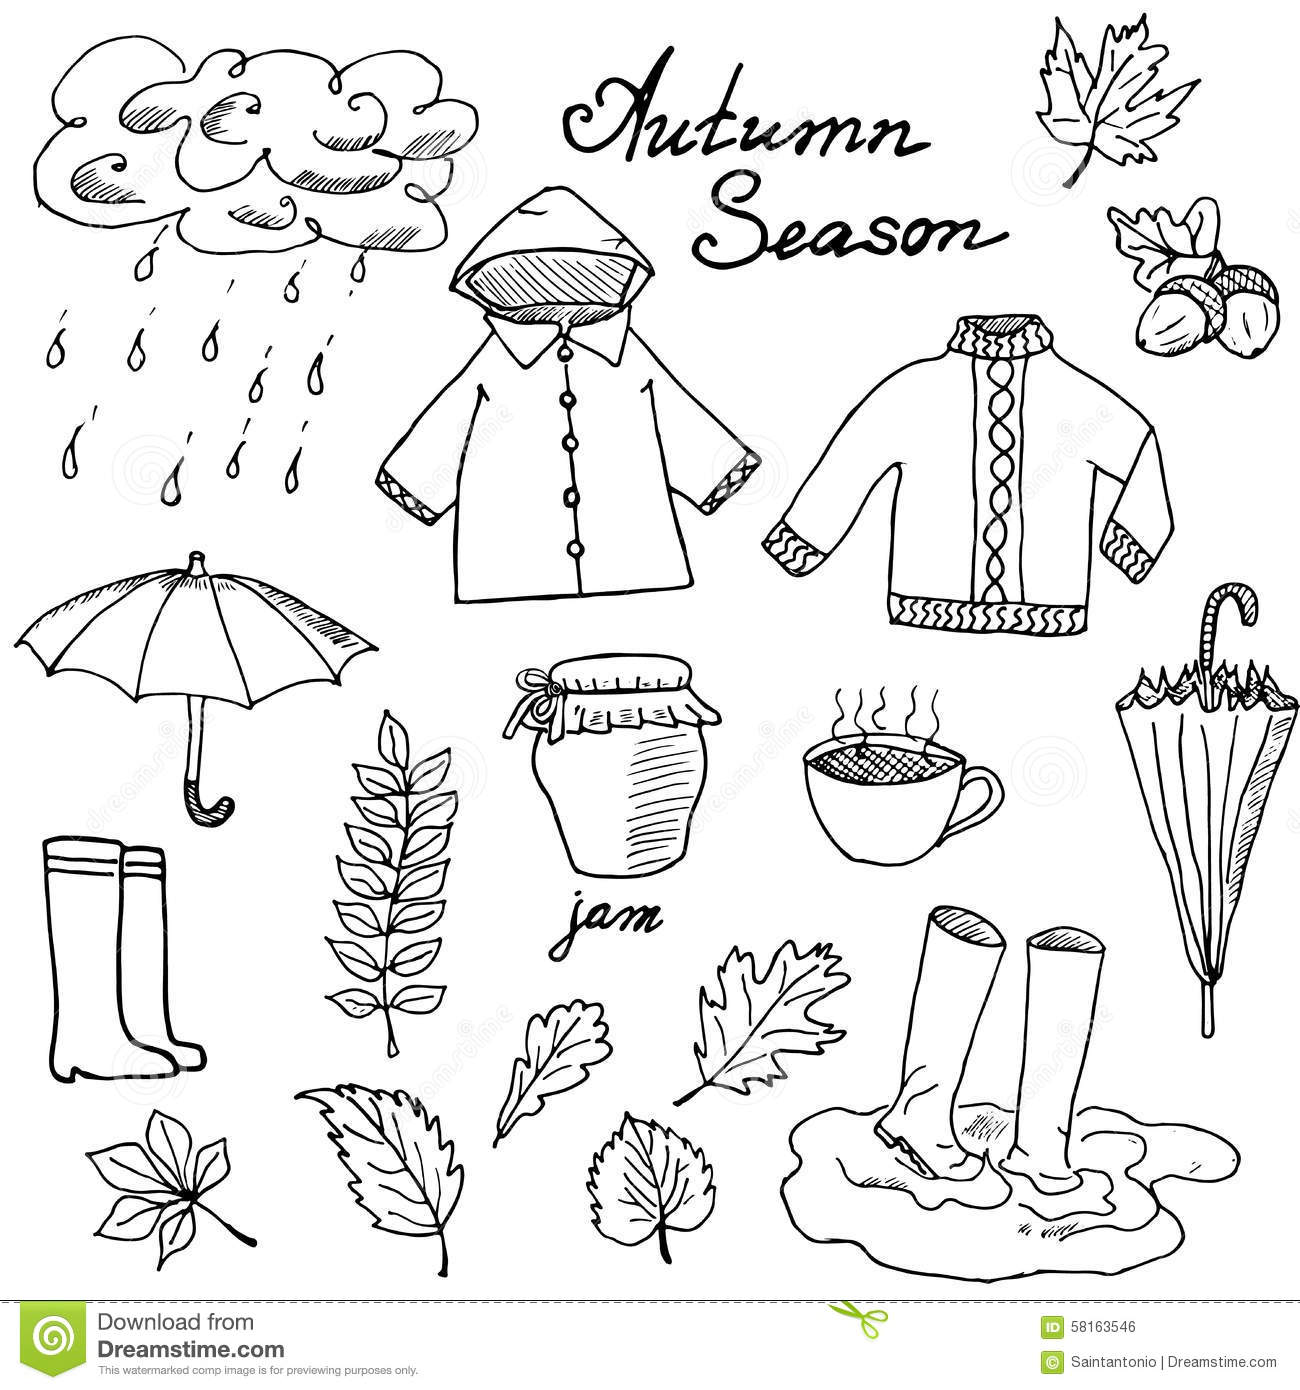 Autumn Clothes Clipart Black And White.